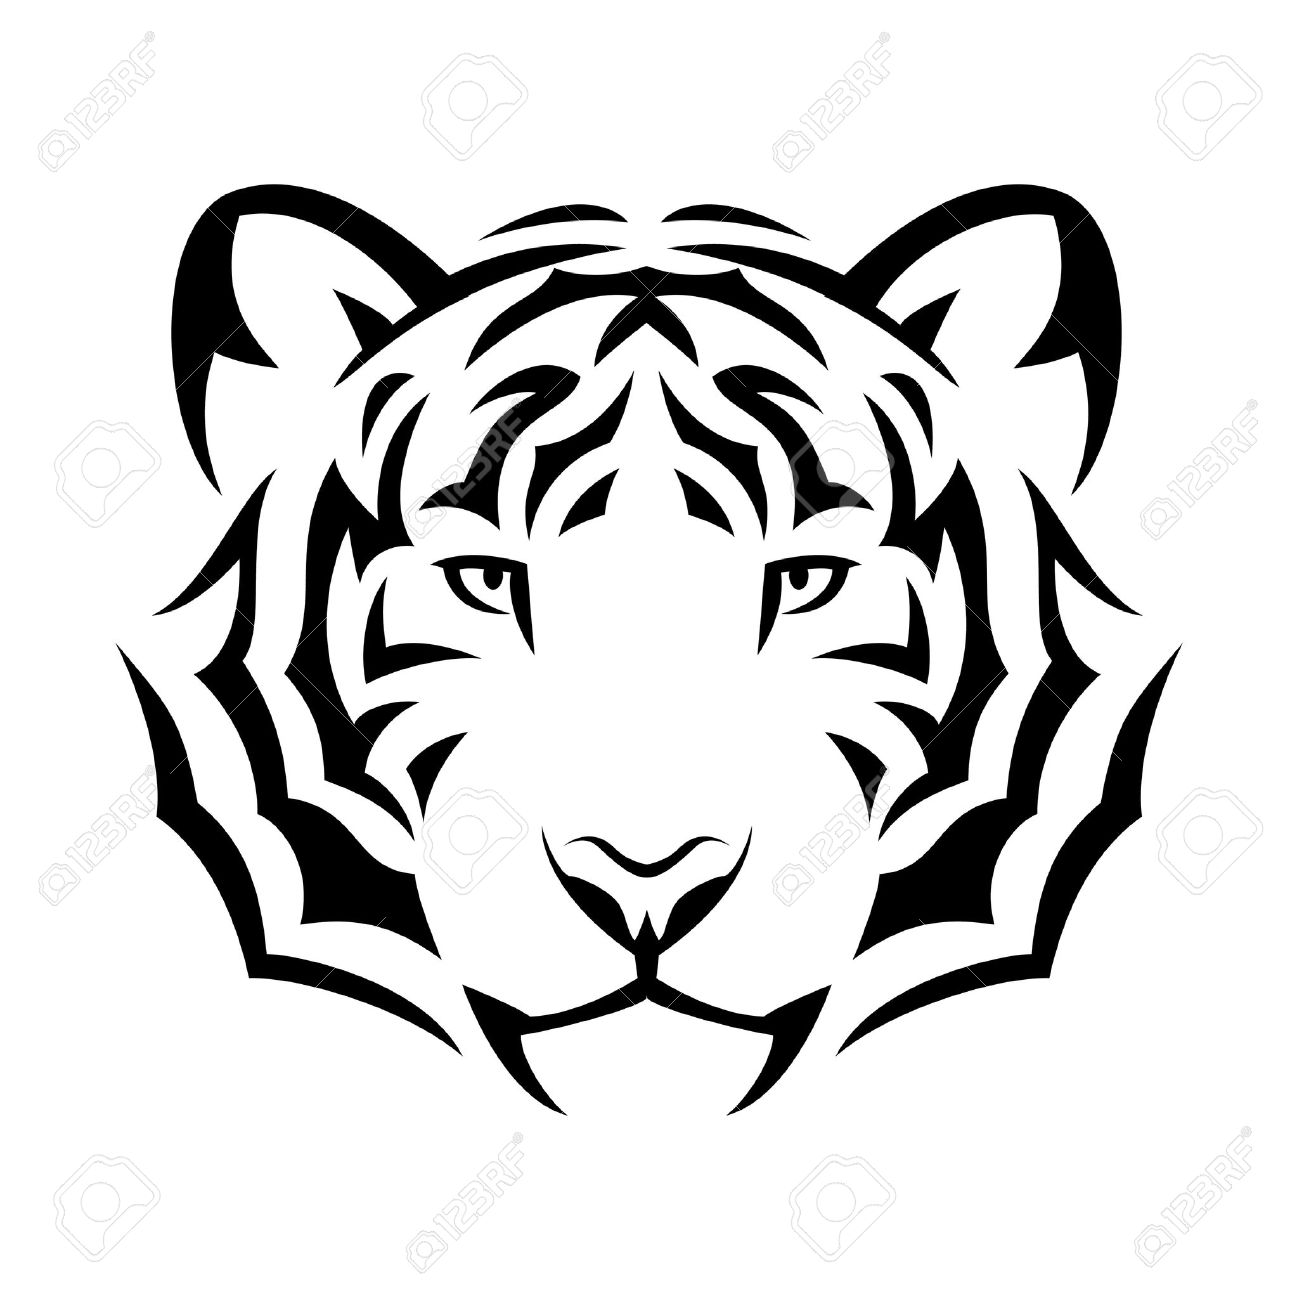 68c1bc38c Tribal tiger tattoo design illustration. Black isolated on white Stock  Vector - 30849890